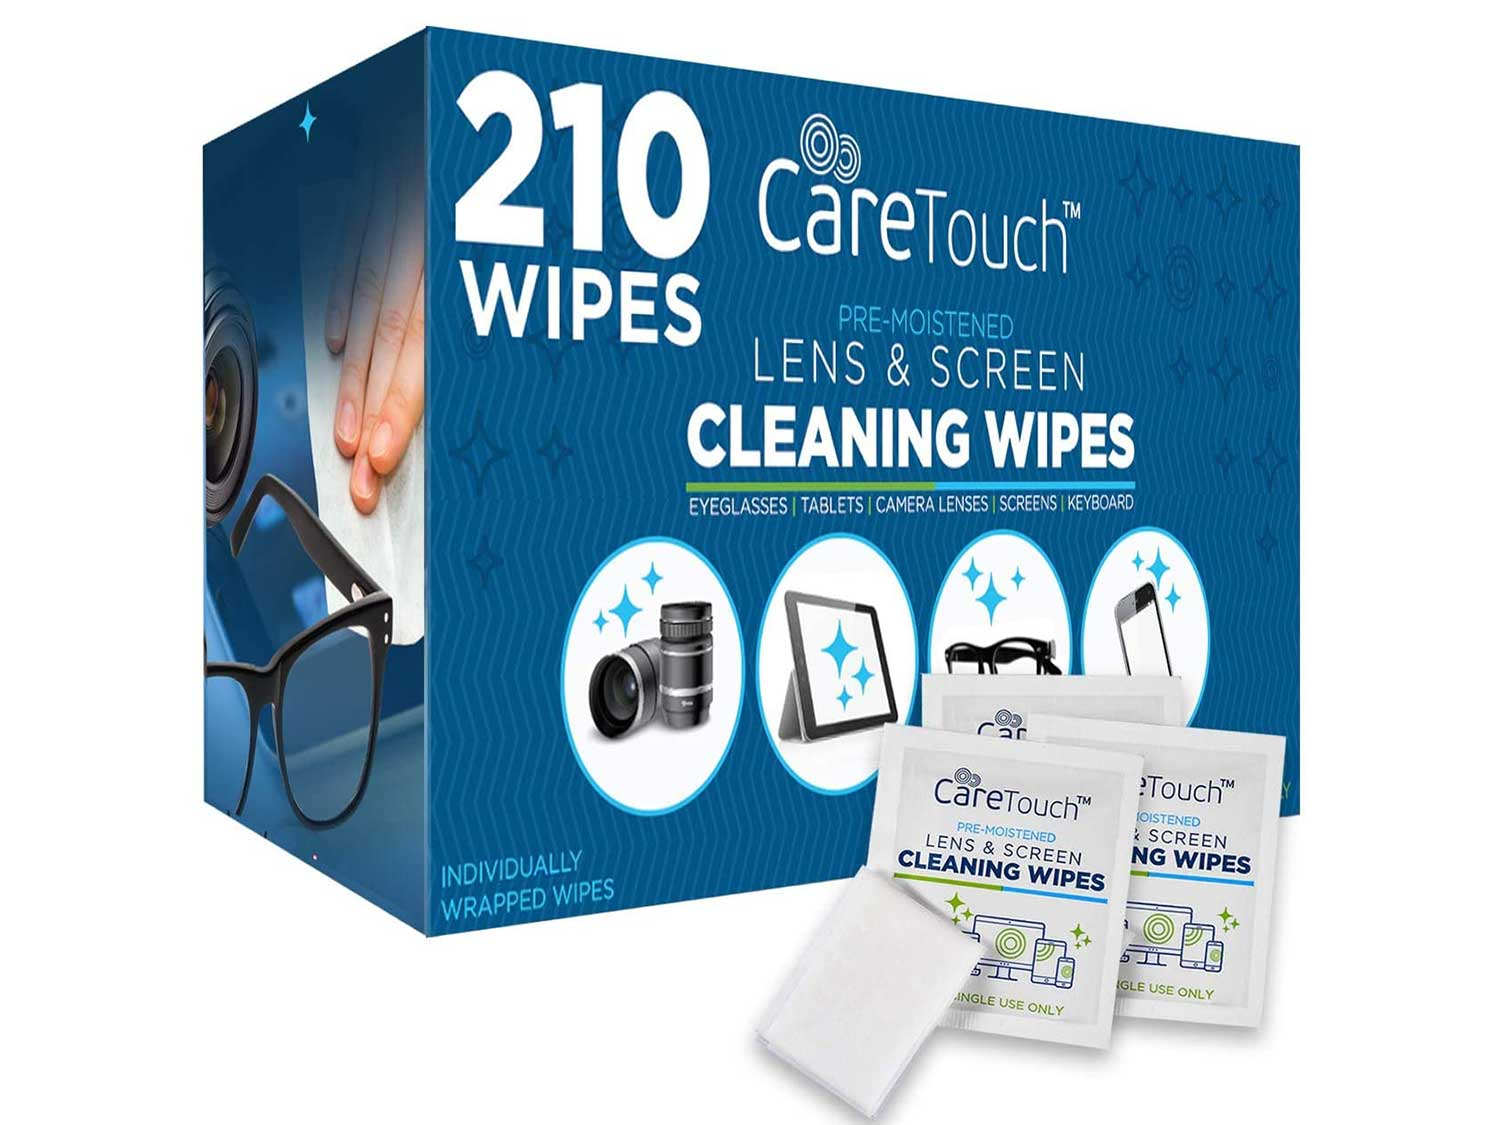 Care Touch Lens Cleaning Wipes | 210 Pre-Moistened and Individually Wrapped Lens Cleaning Wipes | Great for Eyeglasses, Tablets, Camera Lenses, Screens, Keyboards, and Other Delicate Surfaces